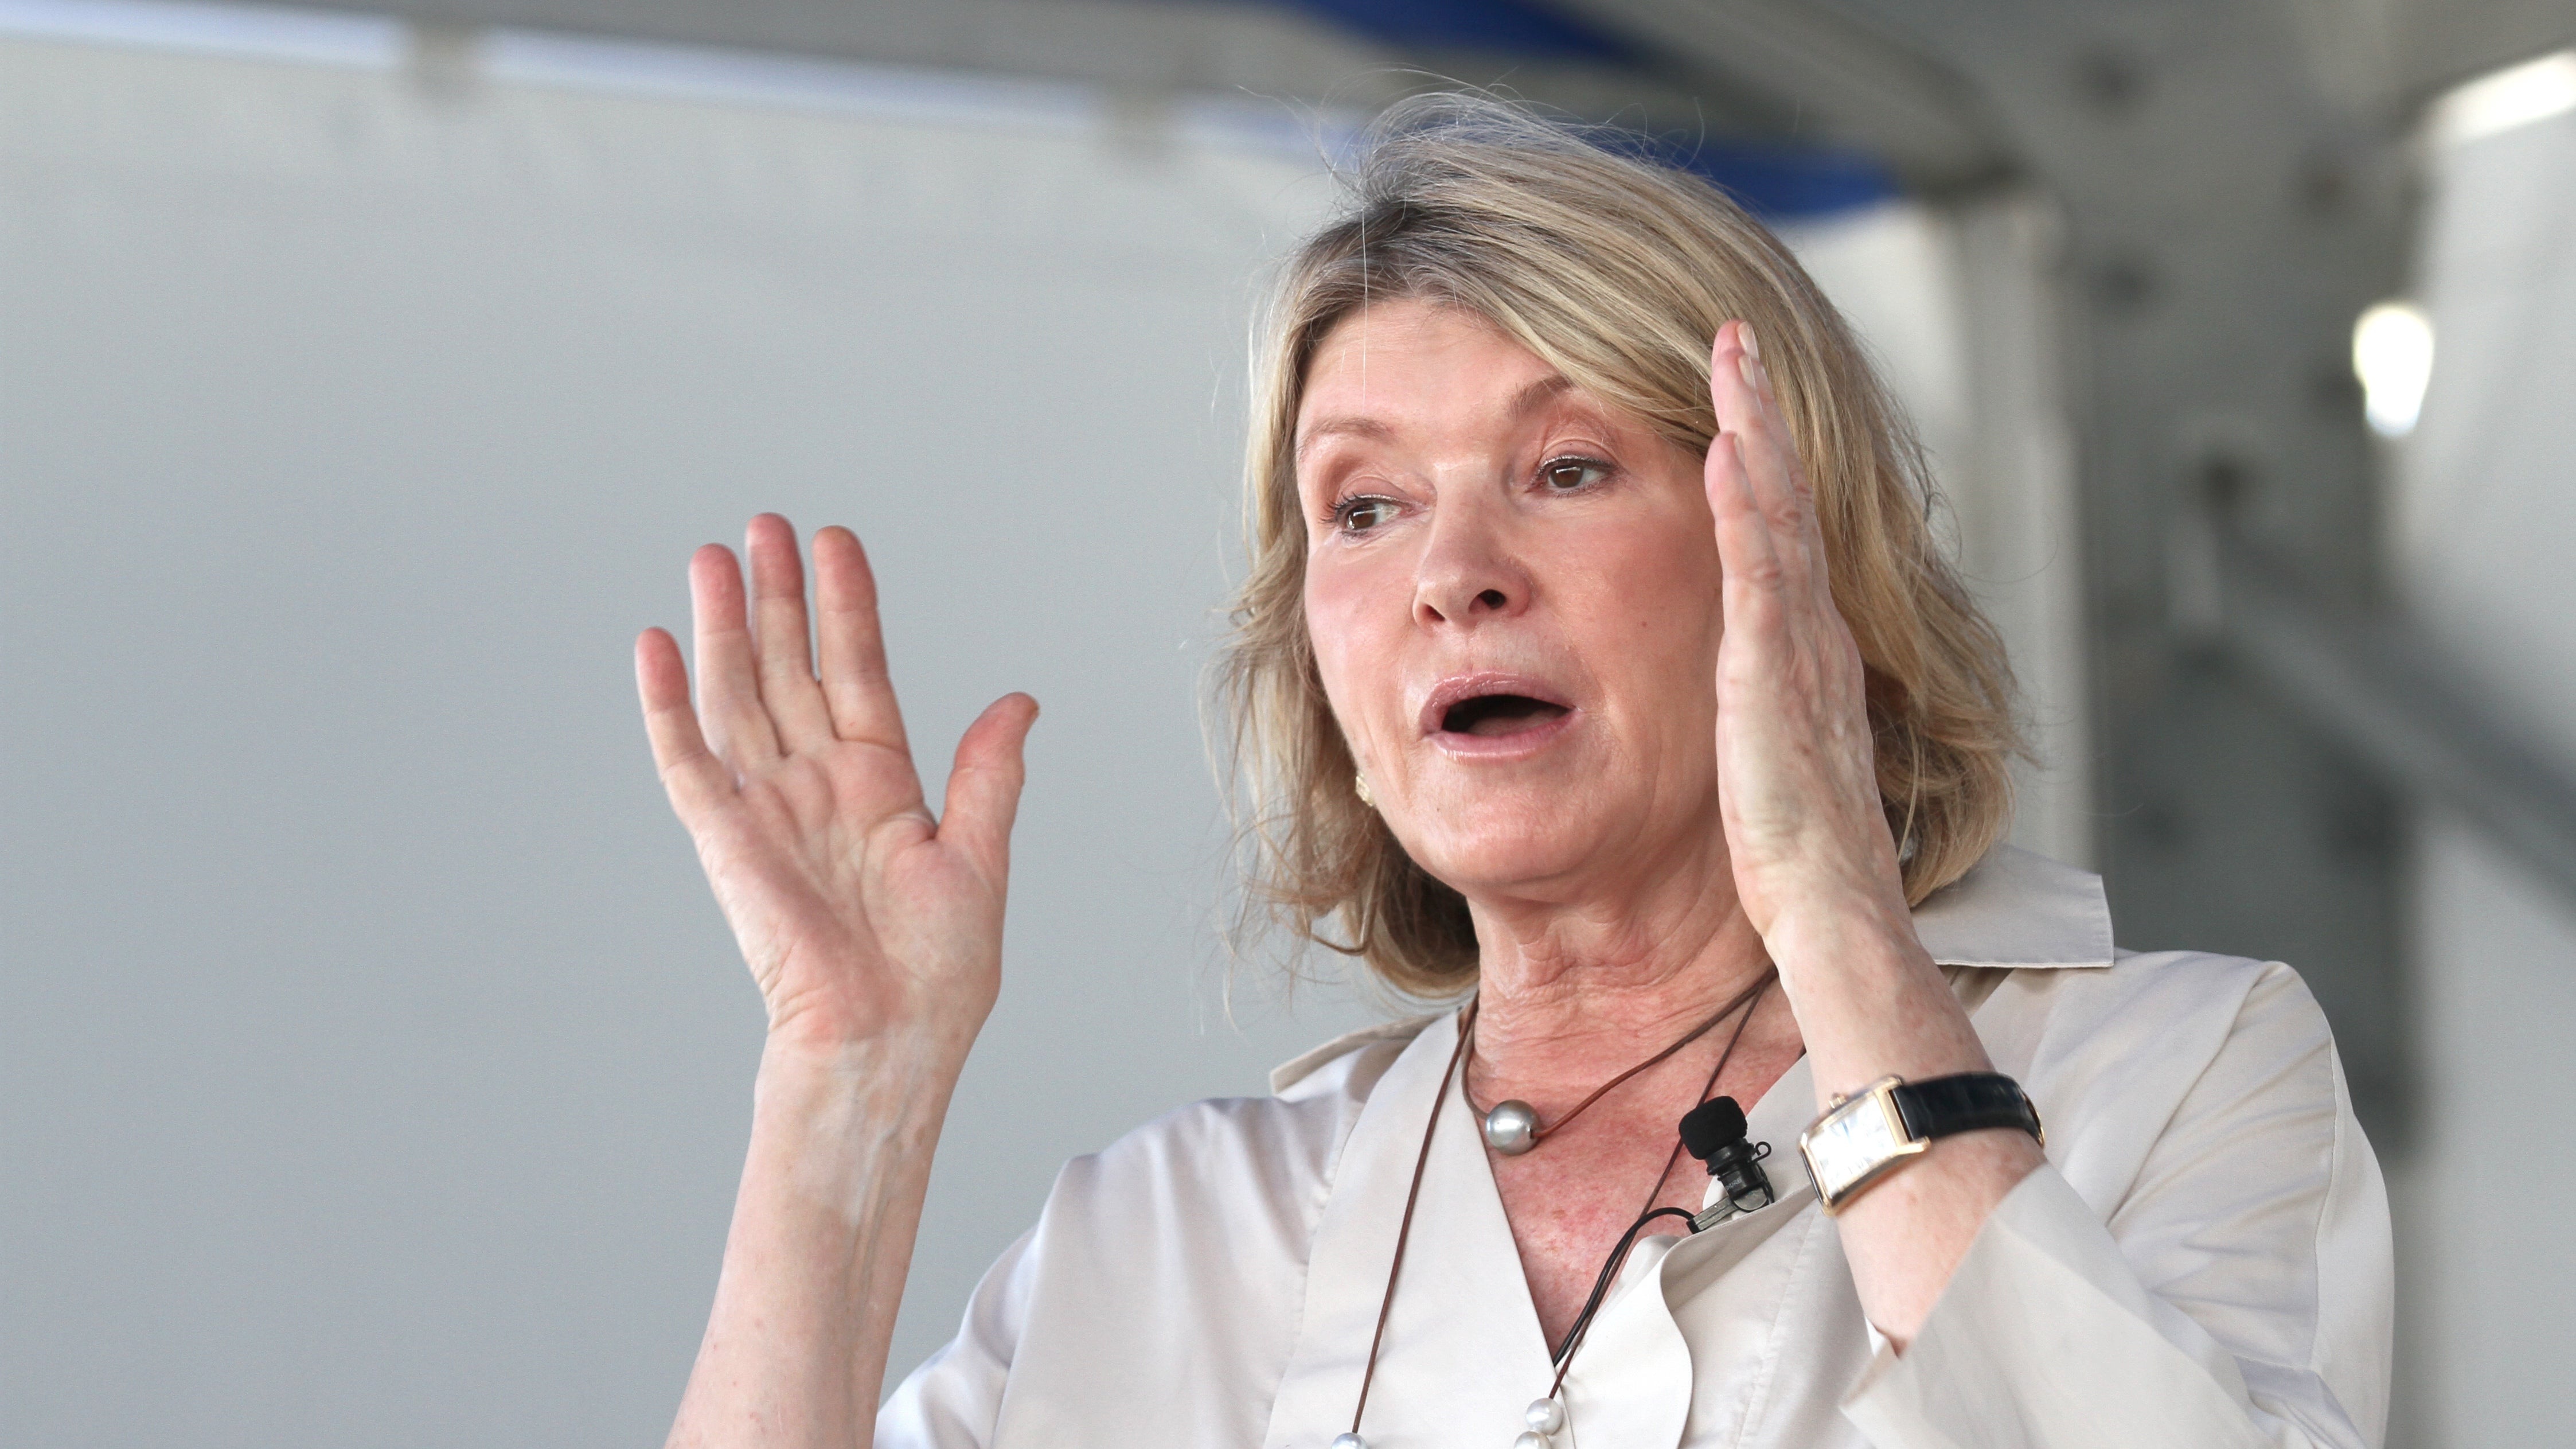 Martha Stewart's Reddit AMA Reveals She Has No Idea What a Dildo Is